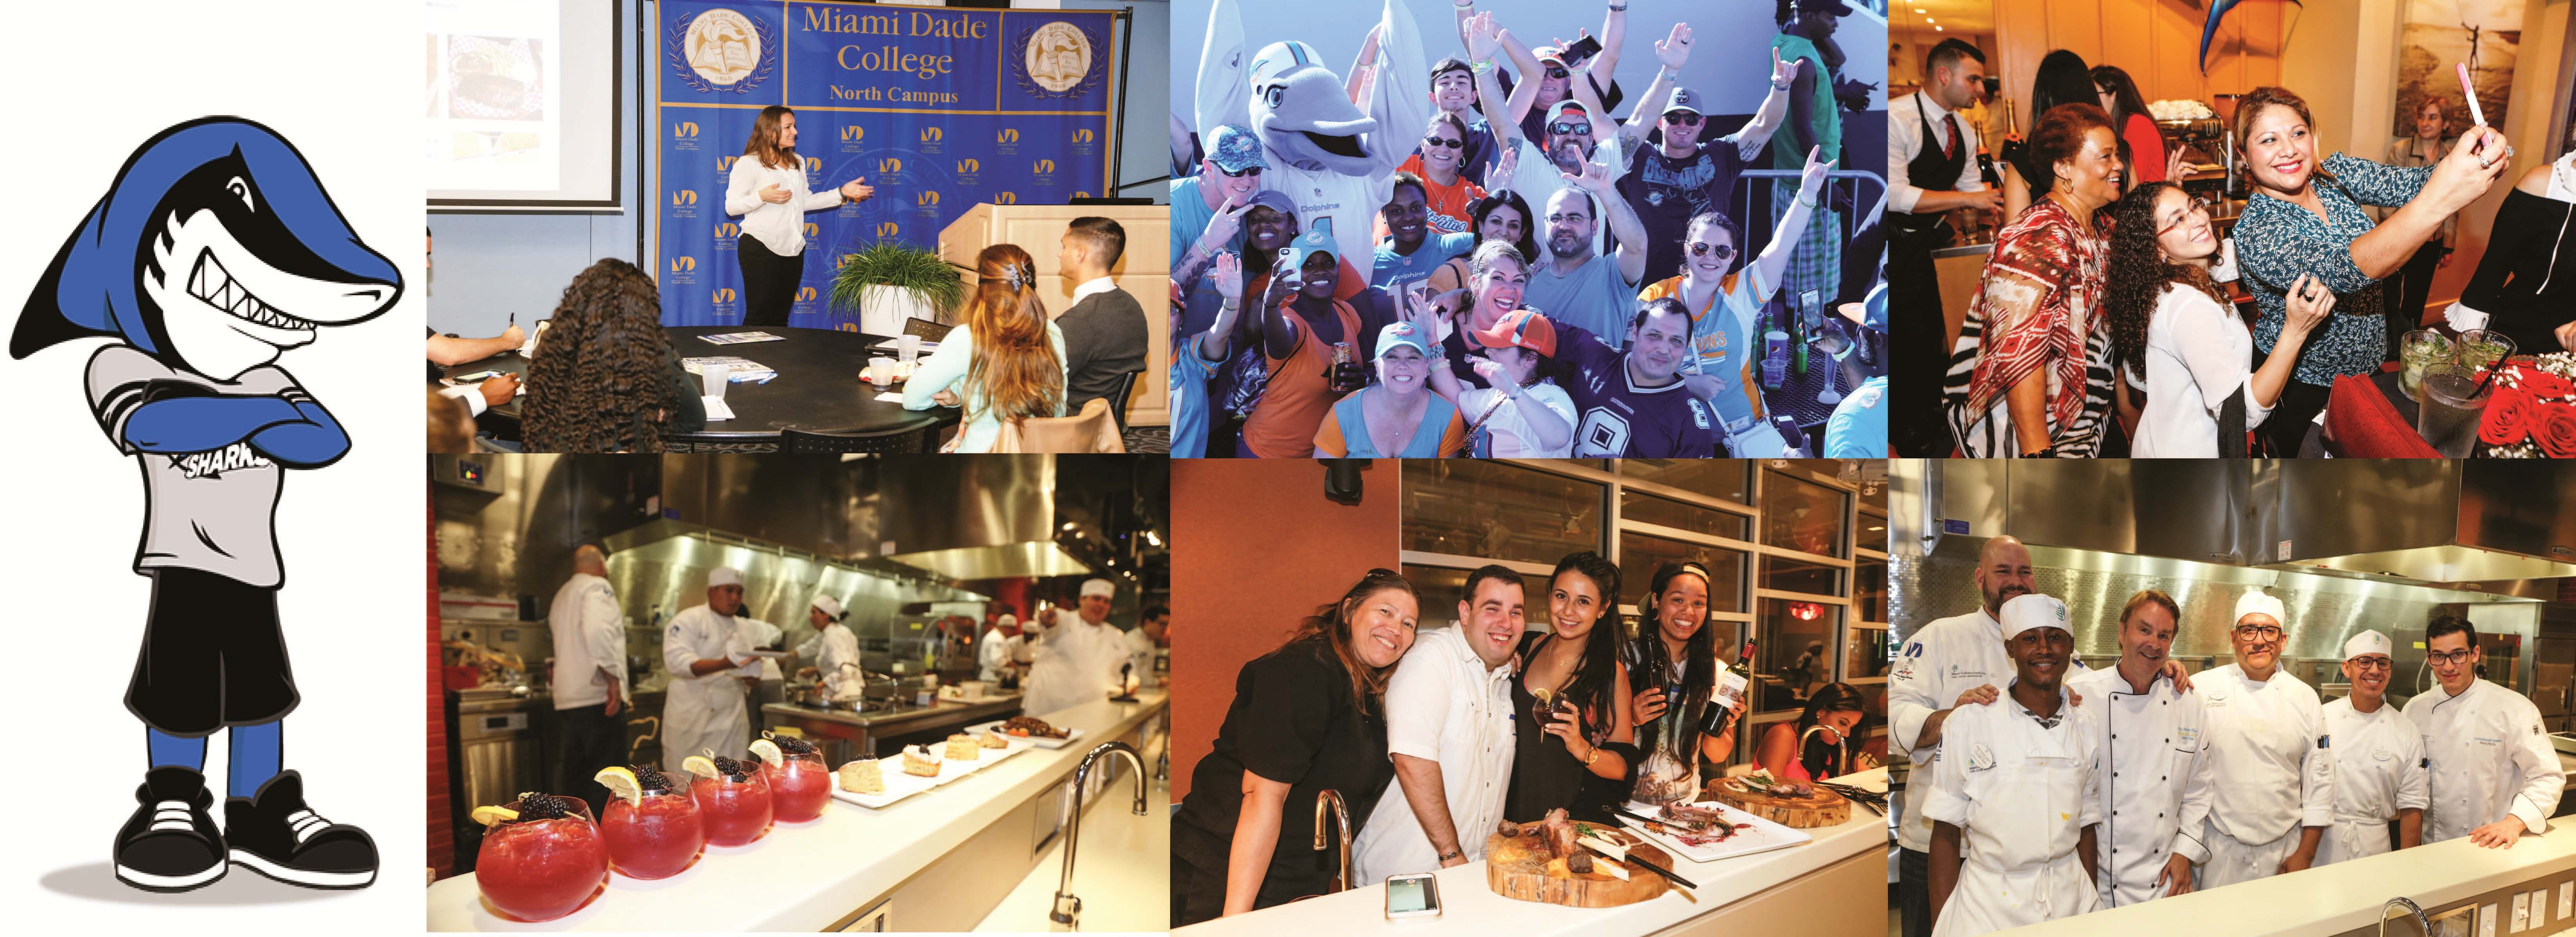 MDC Finn and photo collage of various Alumni events